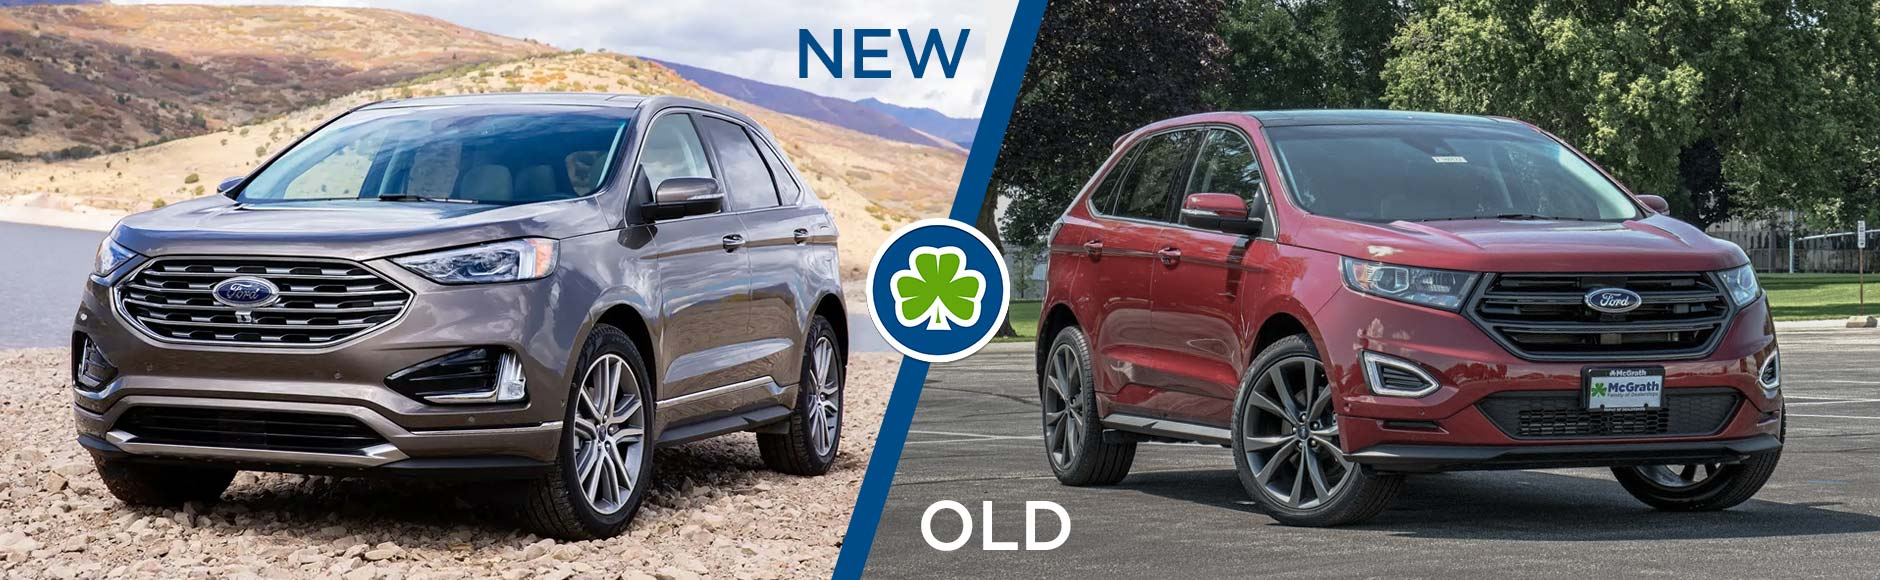 Ford Edge comparison with 2018